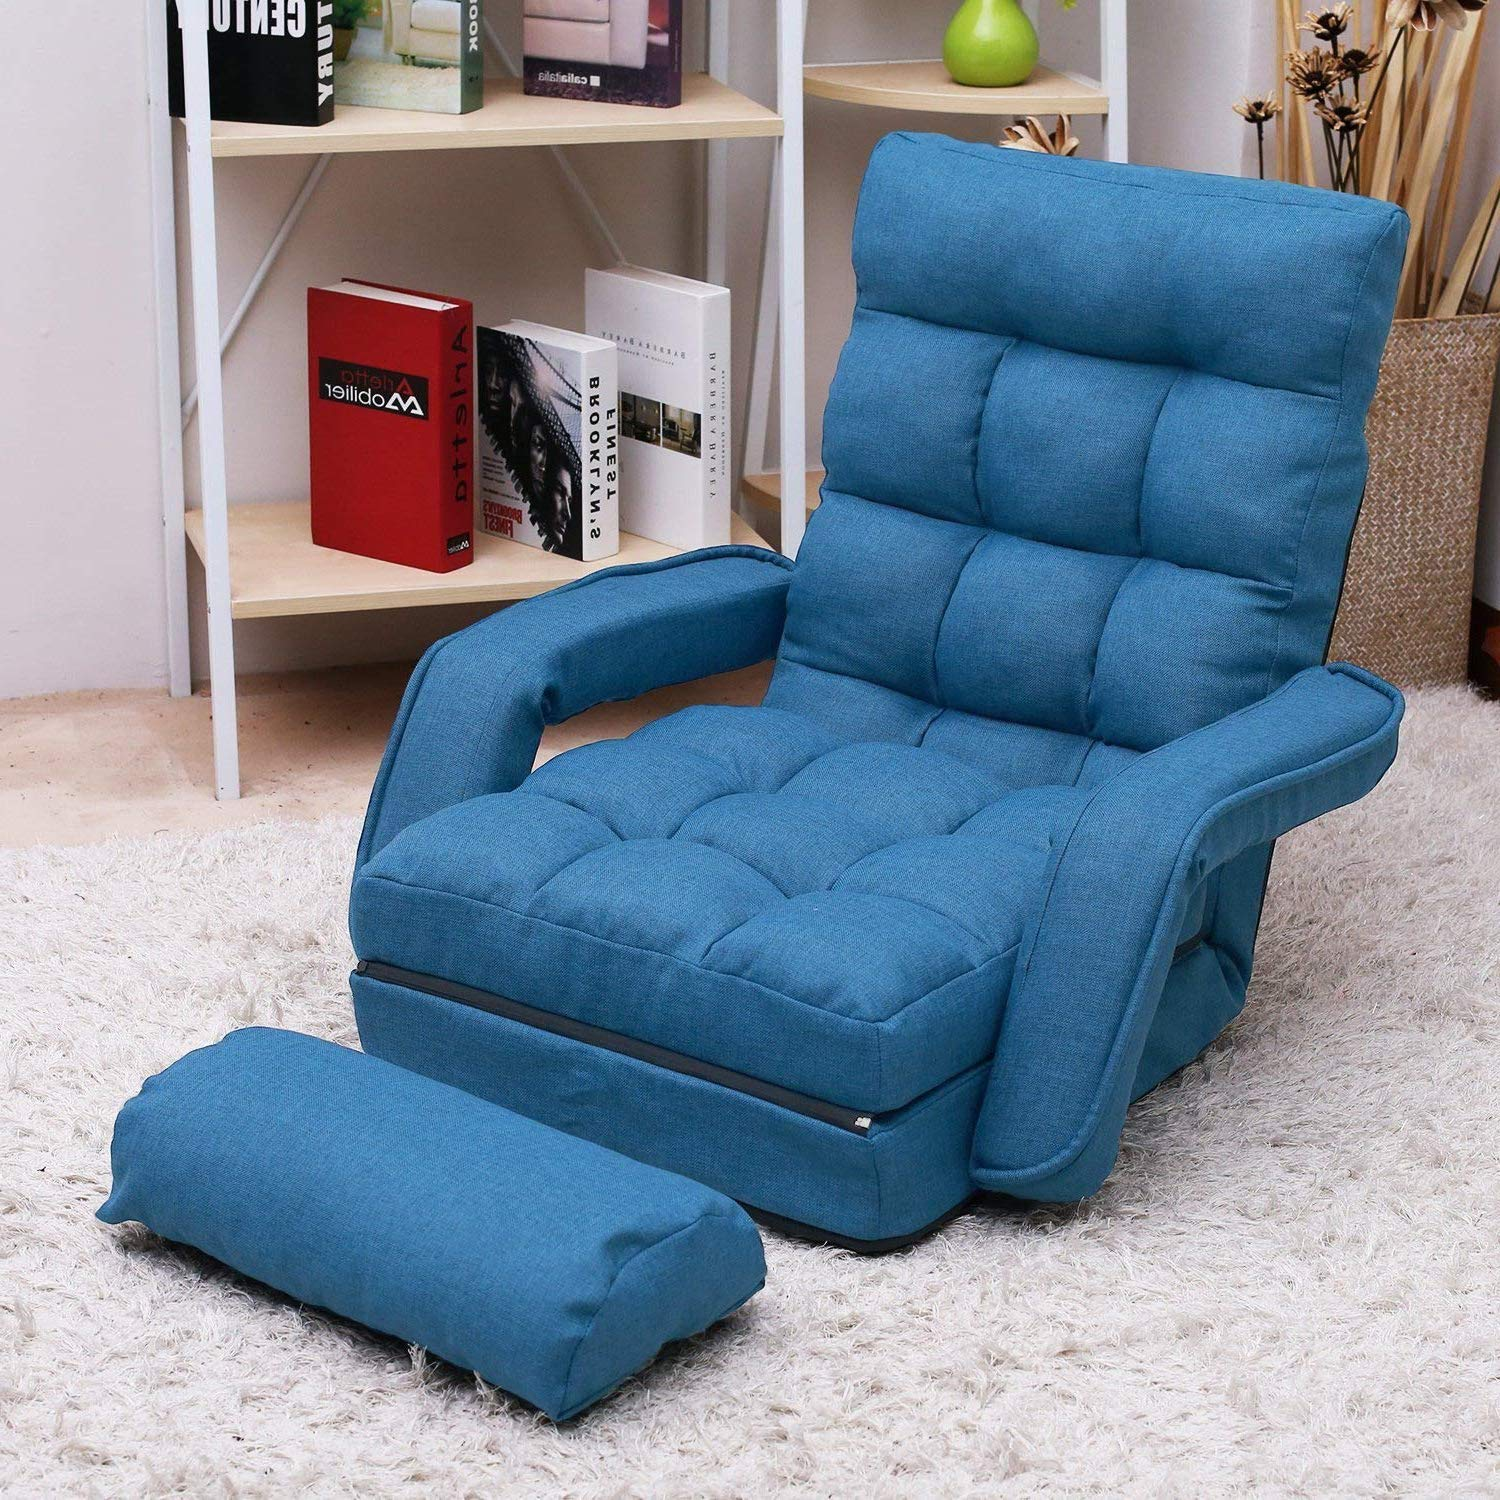 Folding Lazy Sofa Floor Chair, Aprox Sofa Lounger Bed Padded Gaming Chair with Armrests and Pillow for Living Room Games Reading Blue